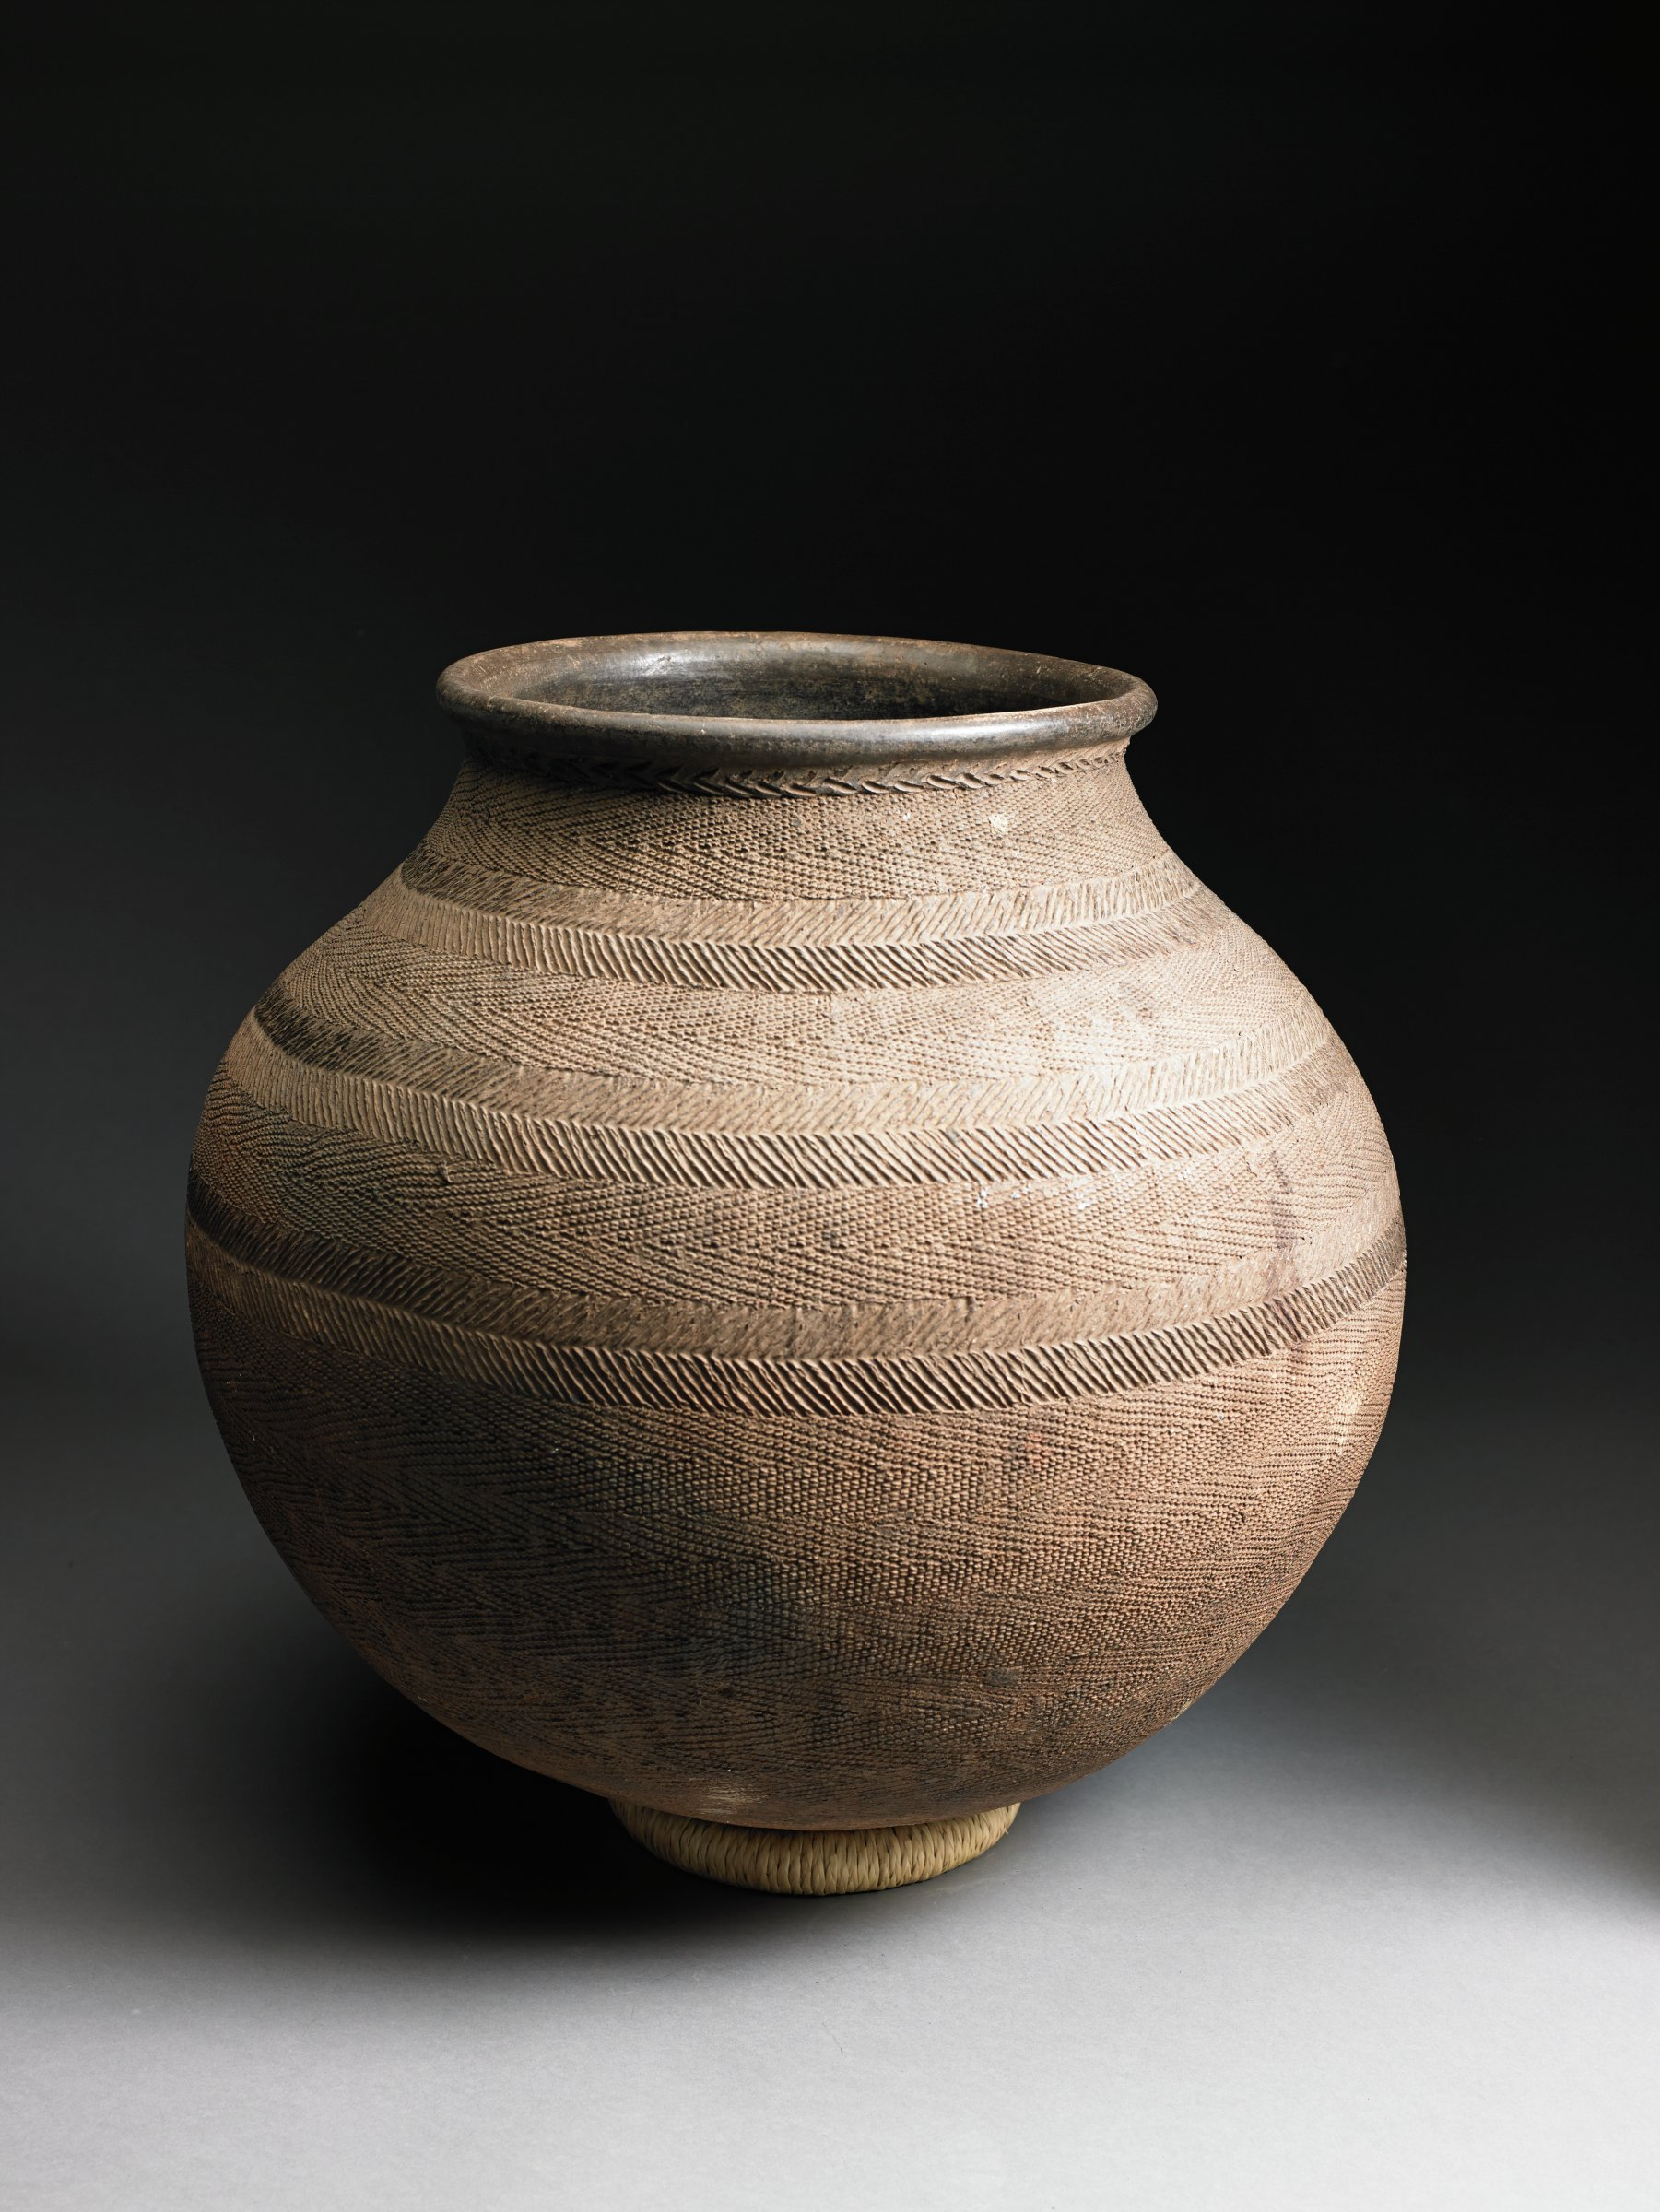 Dark brown, ovoid vessel narrows at neck; body covered with bands of incised diagonal lines and herringbone pattern.